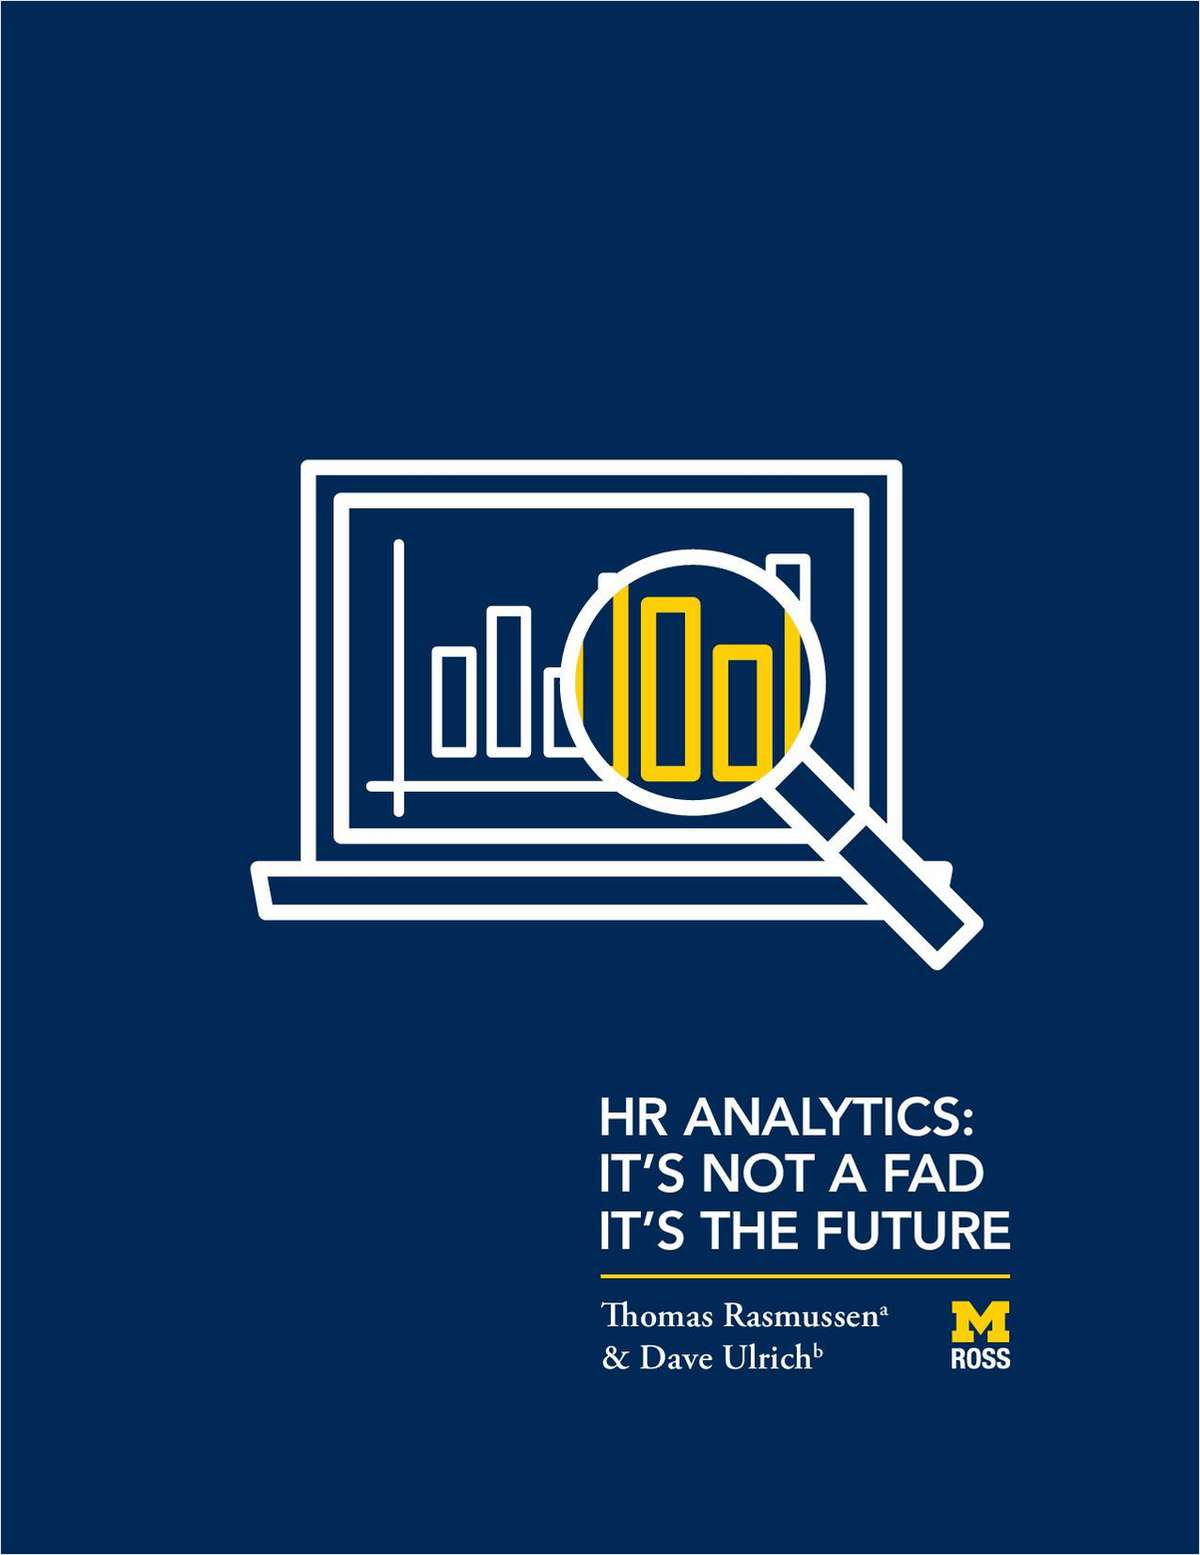 HR Analytics: It's Not A Fad. It's The Future